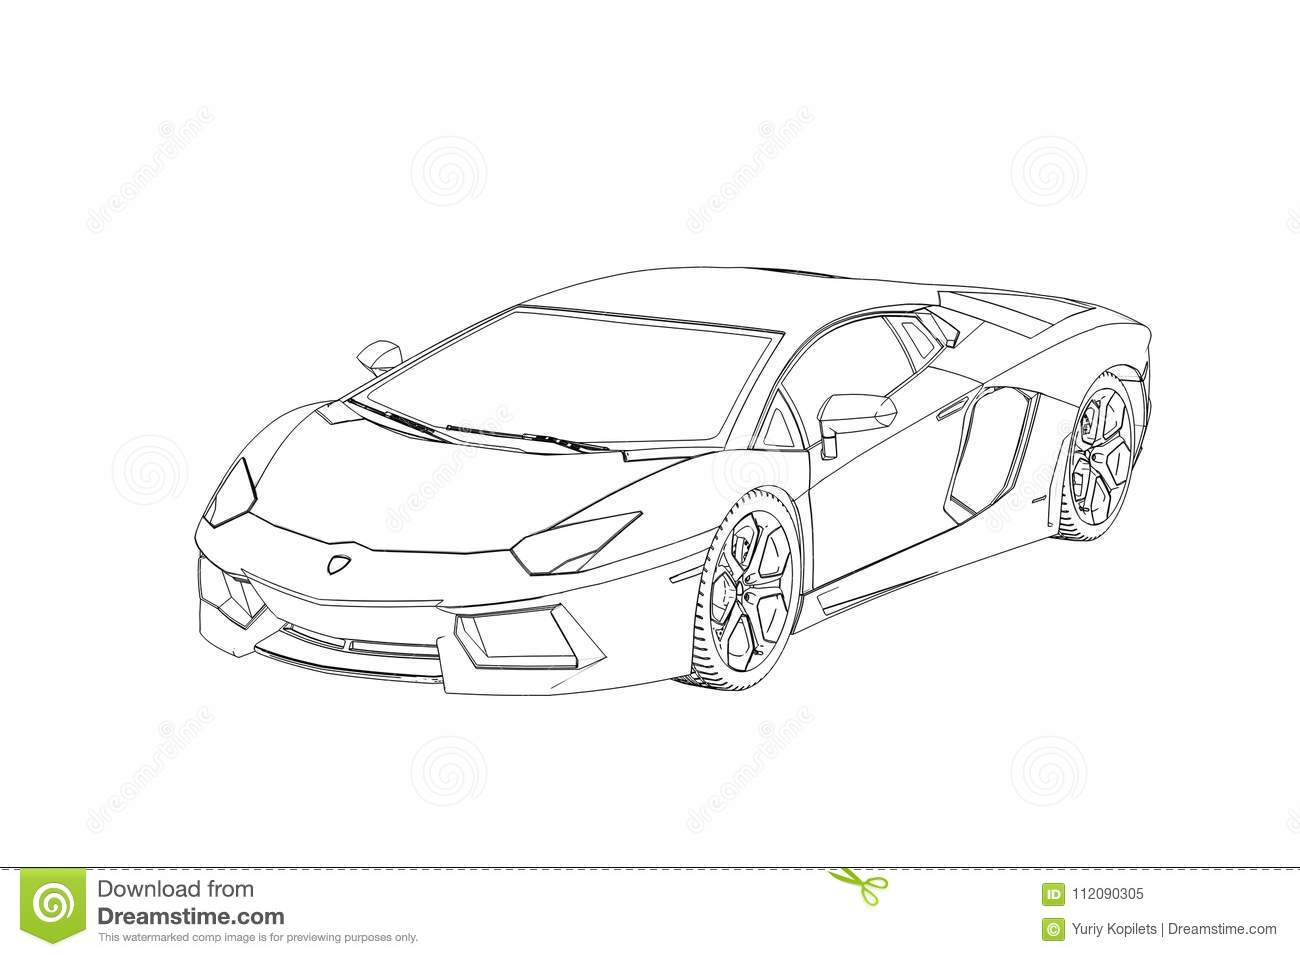 Sprot Car Lamborghini Aventador Sketch 3d Illustration Stock